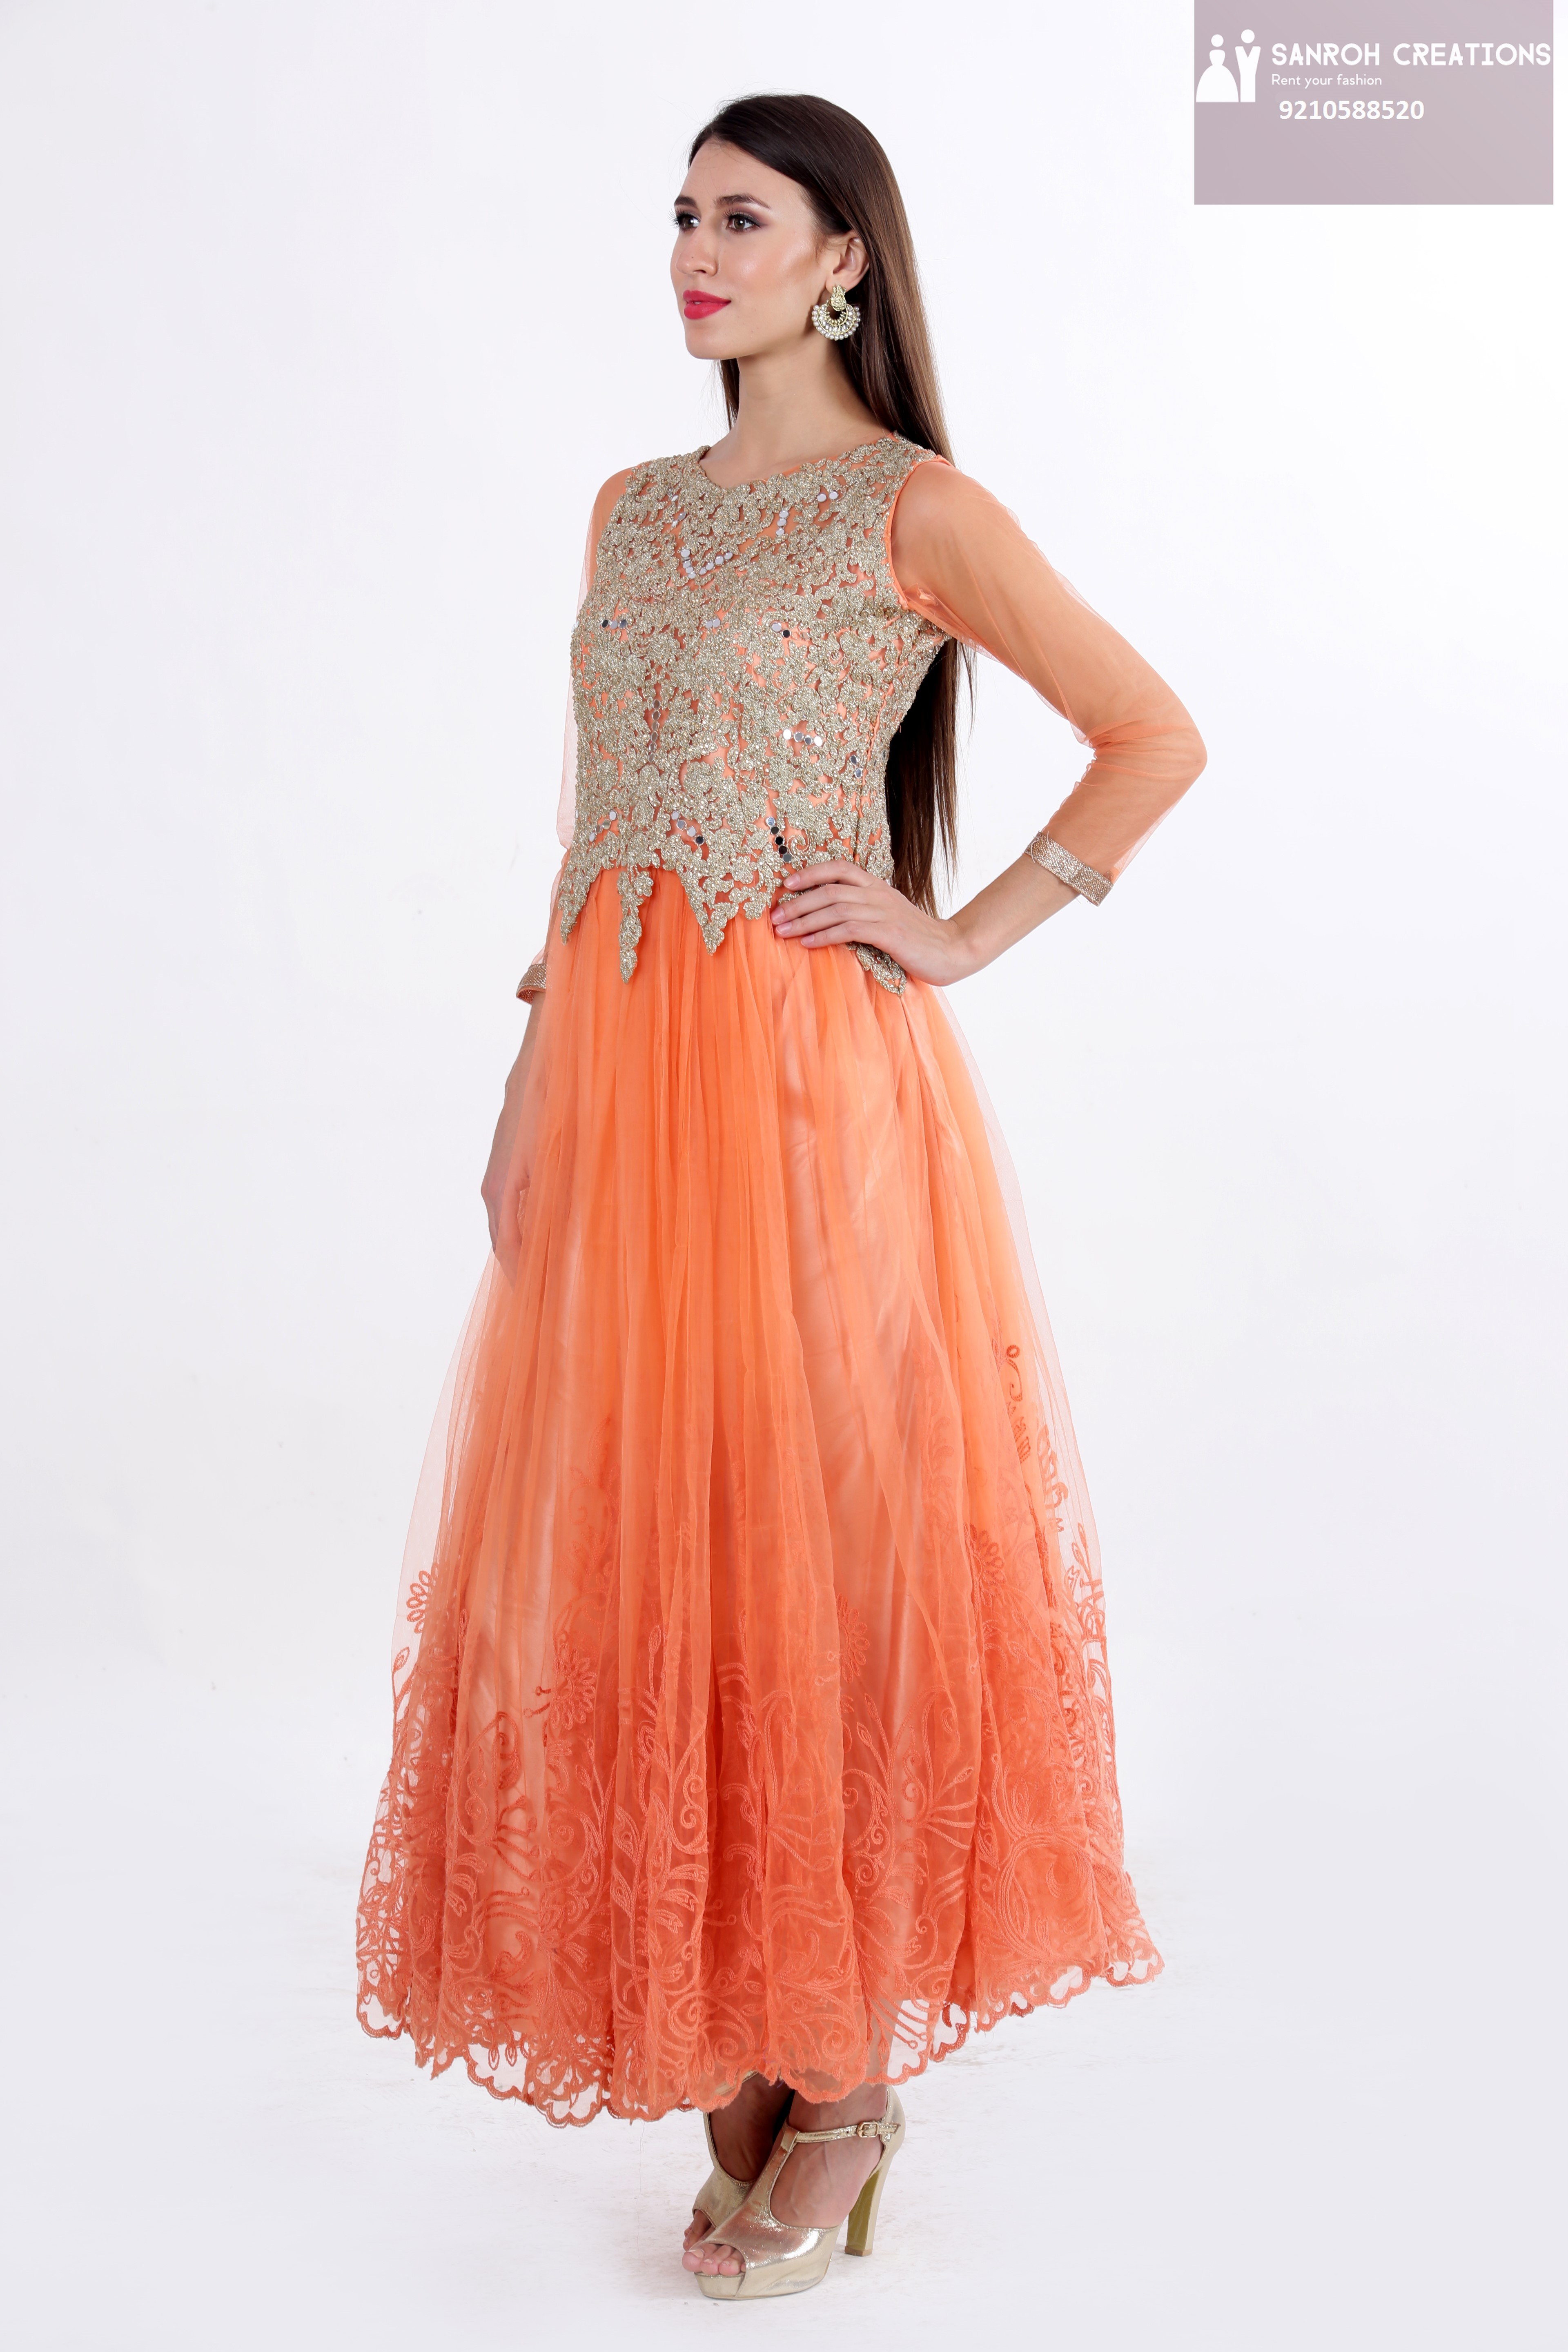 GOWNS ON RENT IN CHATTARPUR